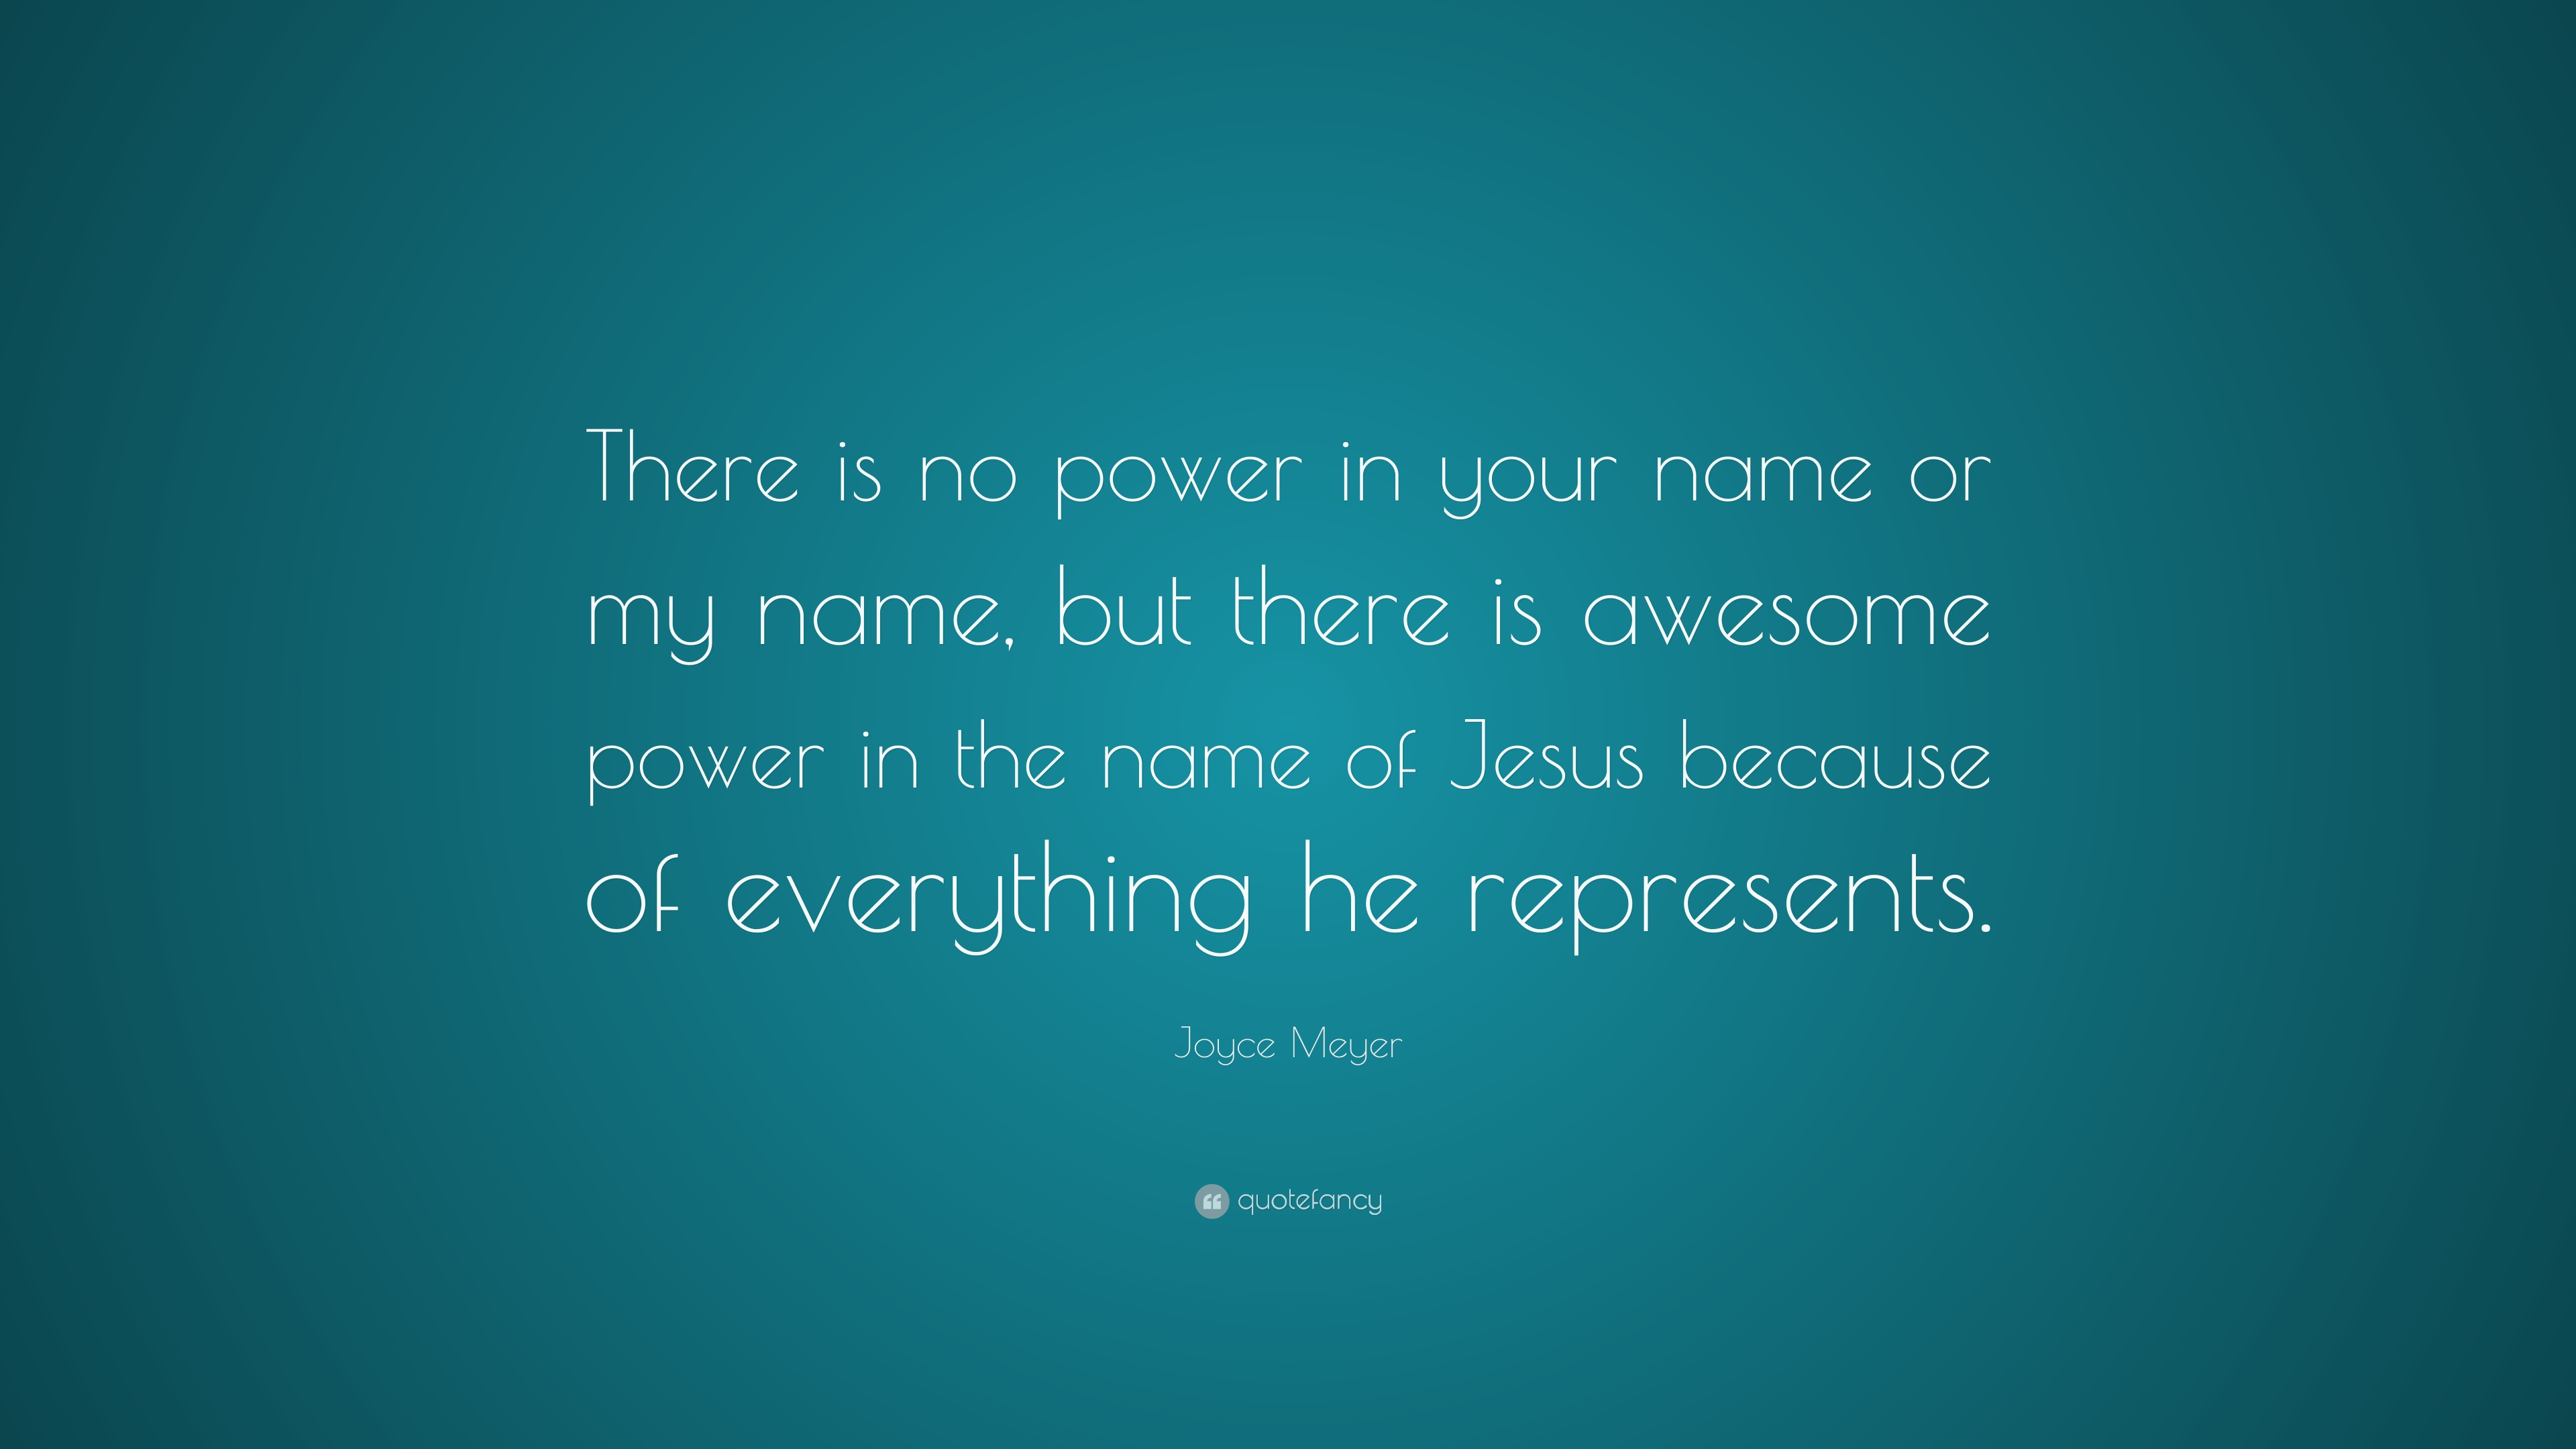 Joyce Meyer Quote: U201cThere Is No Power In Your Name Or My Name,